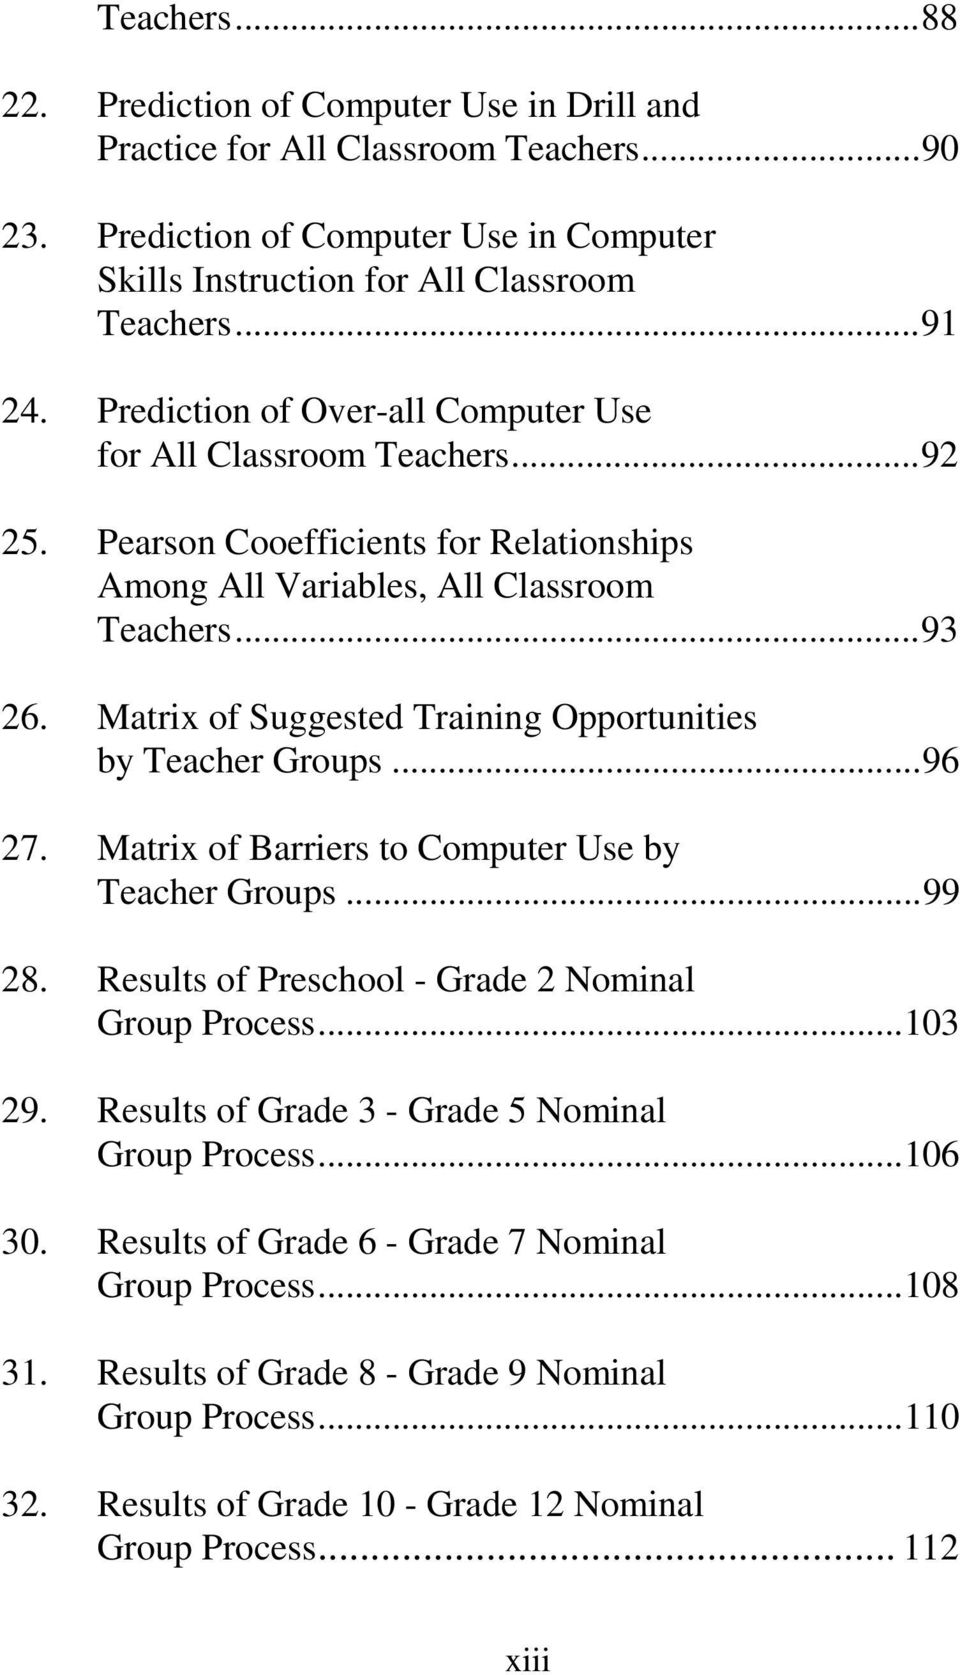 Matrix of Suggested Training Opportunities by Teacher Groups...96 27. Matrix of Barriers to Computer Use by Teacher Groups...99 28. Results of Preschool - Grade 2 Nominal Group Process...103 29.